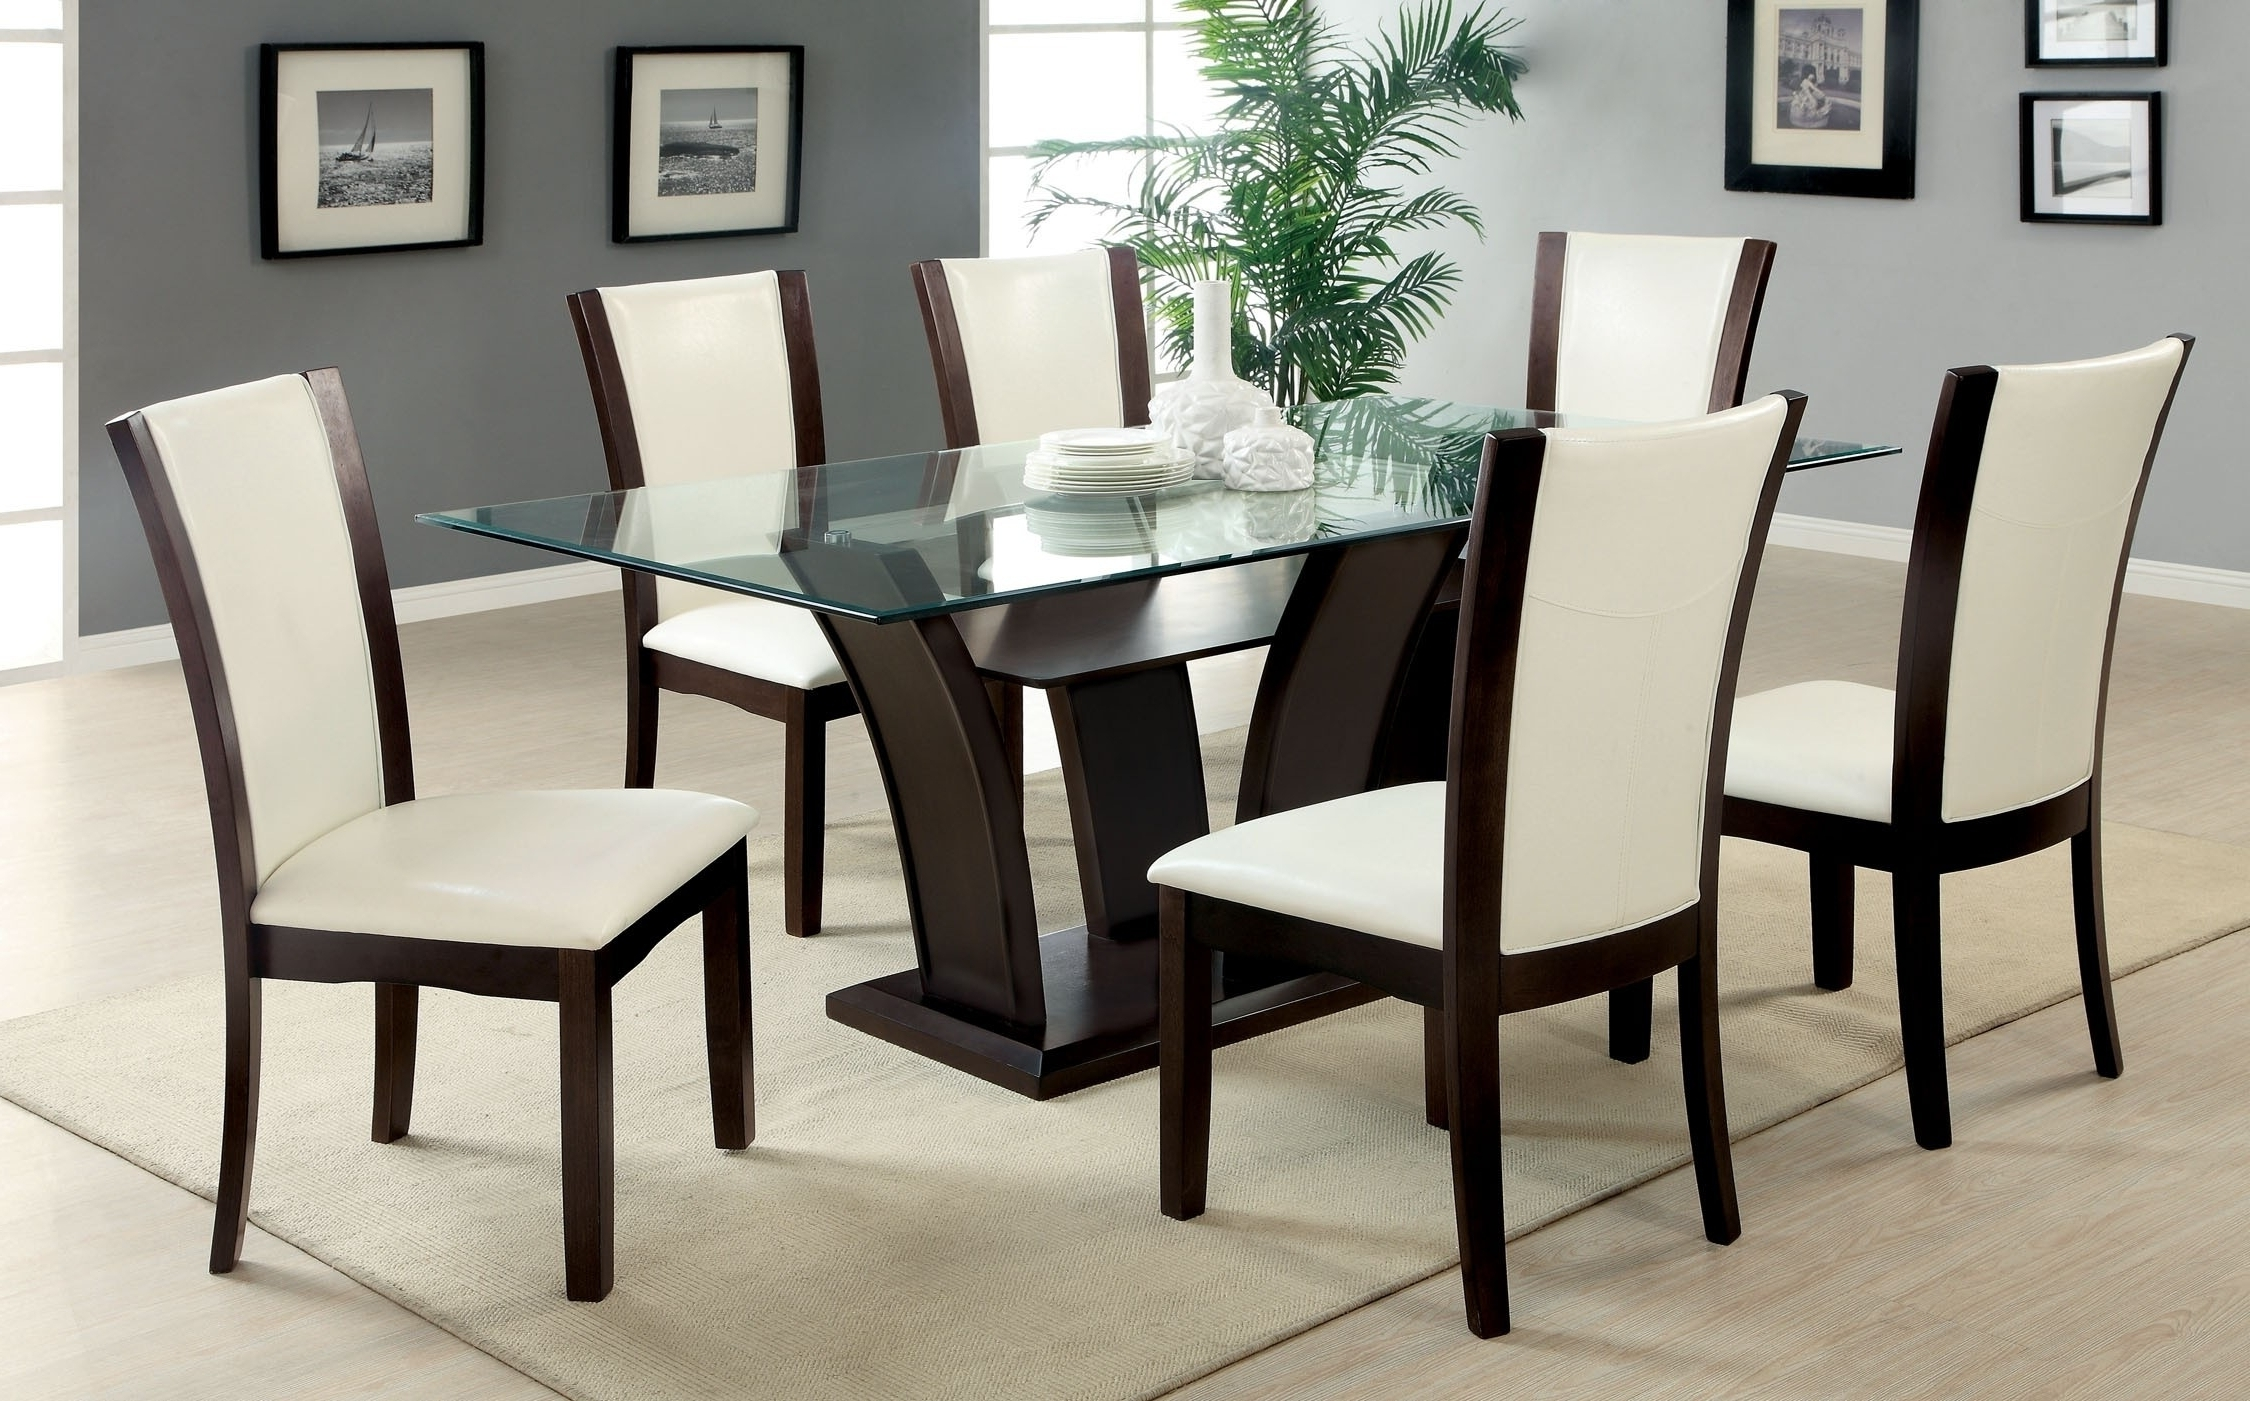 6 Chairs And Dining Tables throughout Most Up-to-Date More Decorating Ideas Glass Top Dining Table Set 6 Chairs On A